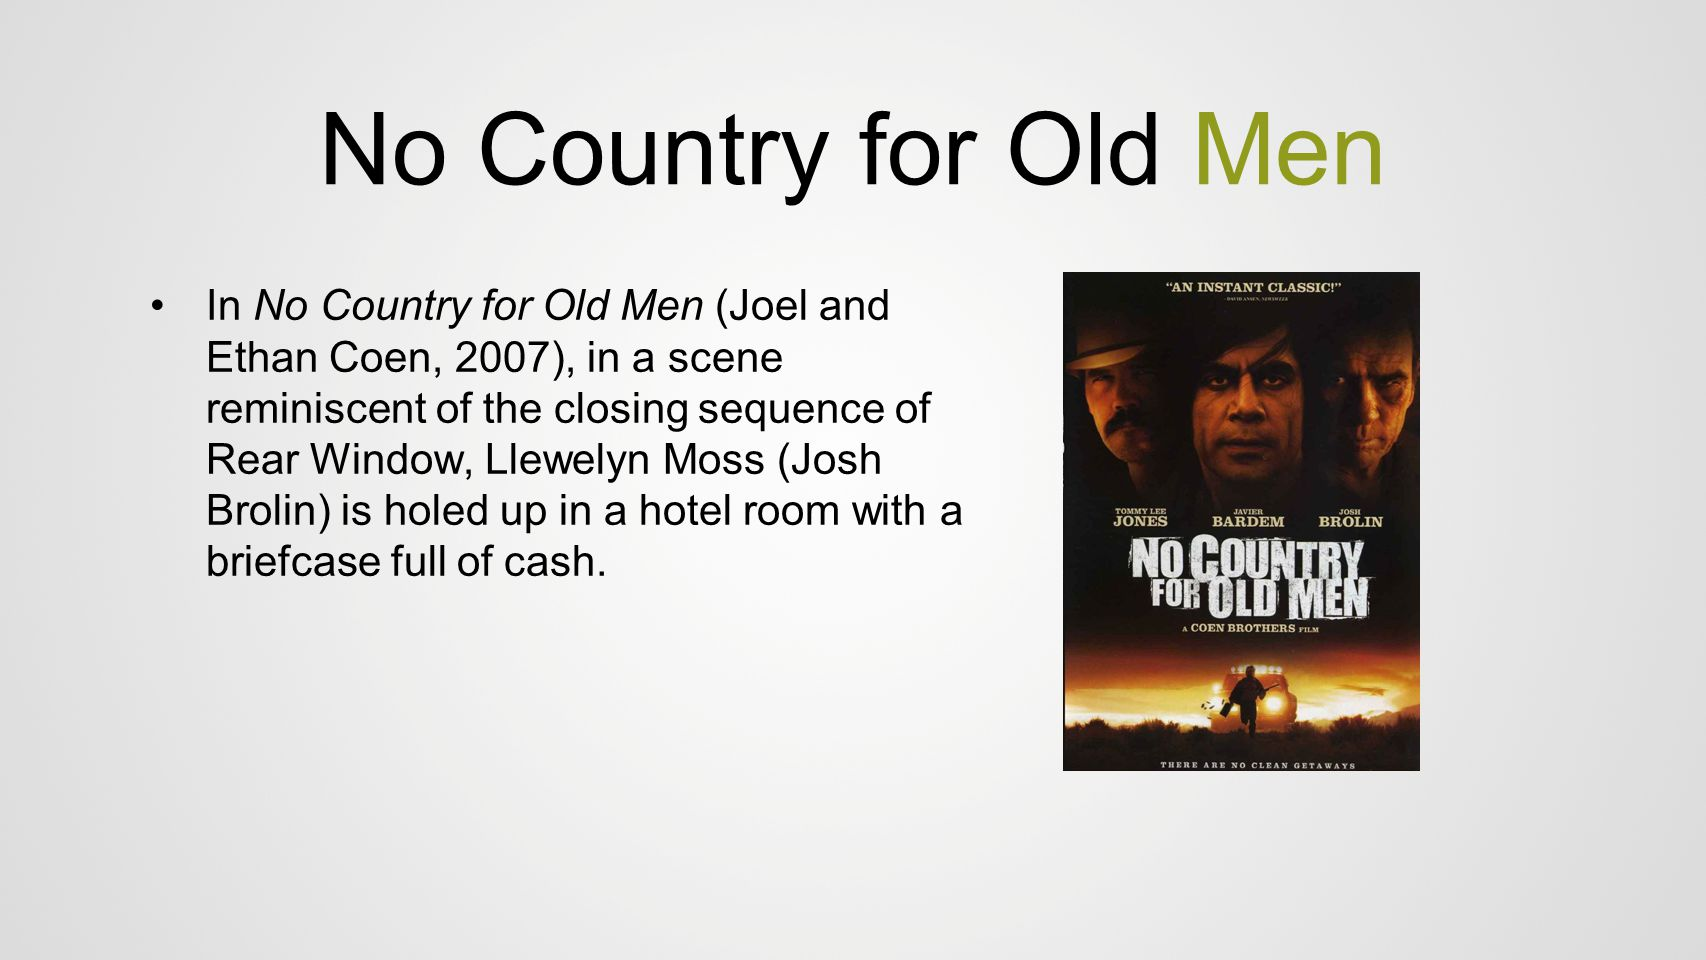 No Country for Old Men In No Country for Old Men (Joel and Ethan Coen, 2007), in a scene reminiscent of the closing sequence of Rear Window, Llewelyn